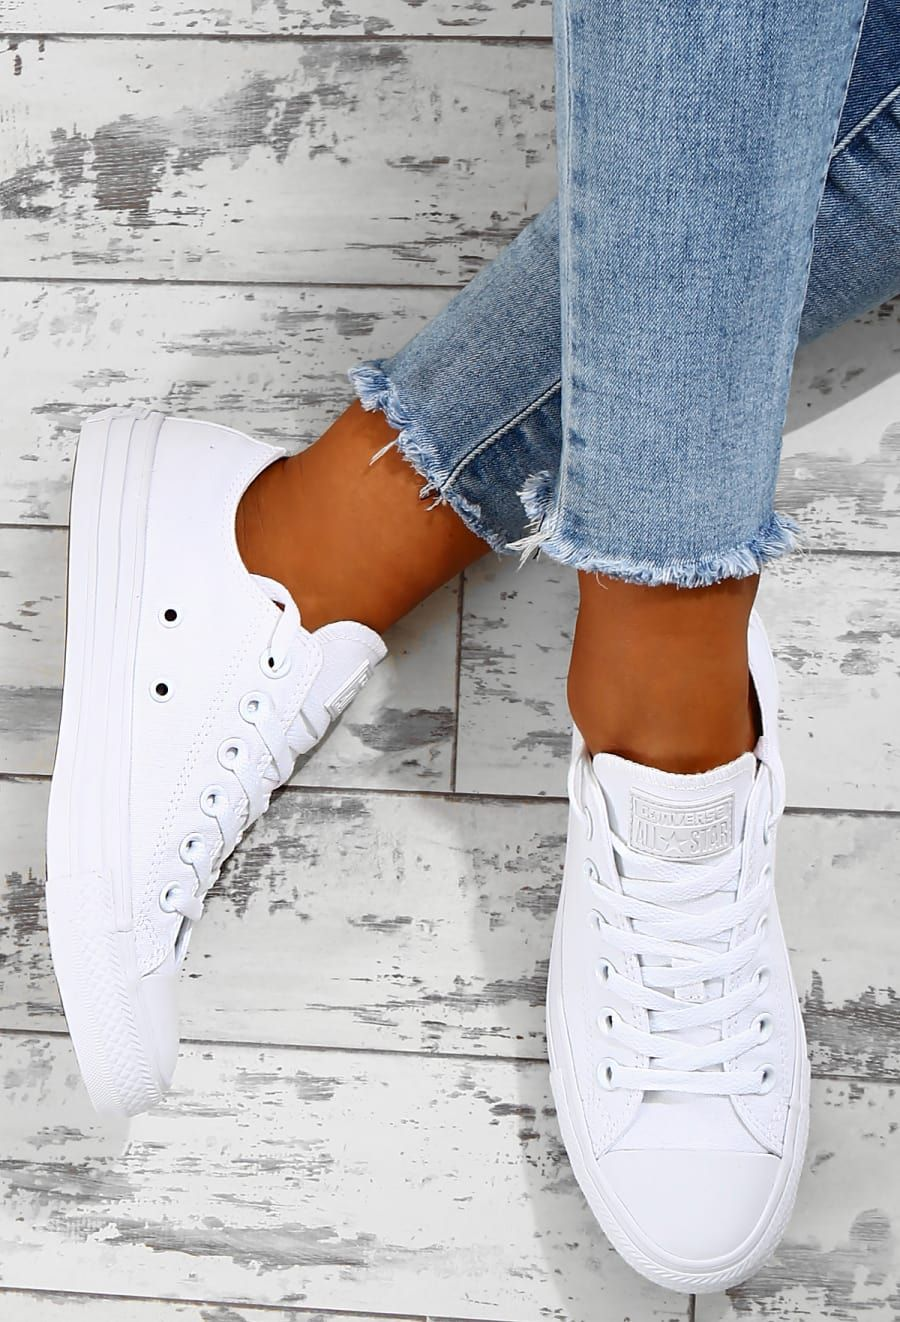 Chuck Taylor Converse All Star All White Trainers | Dámská